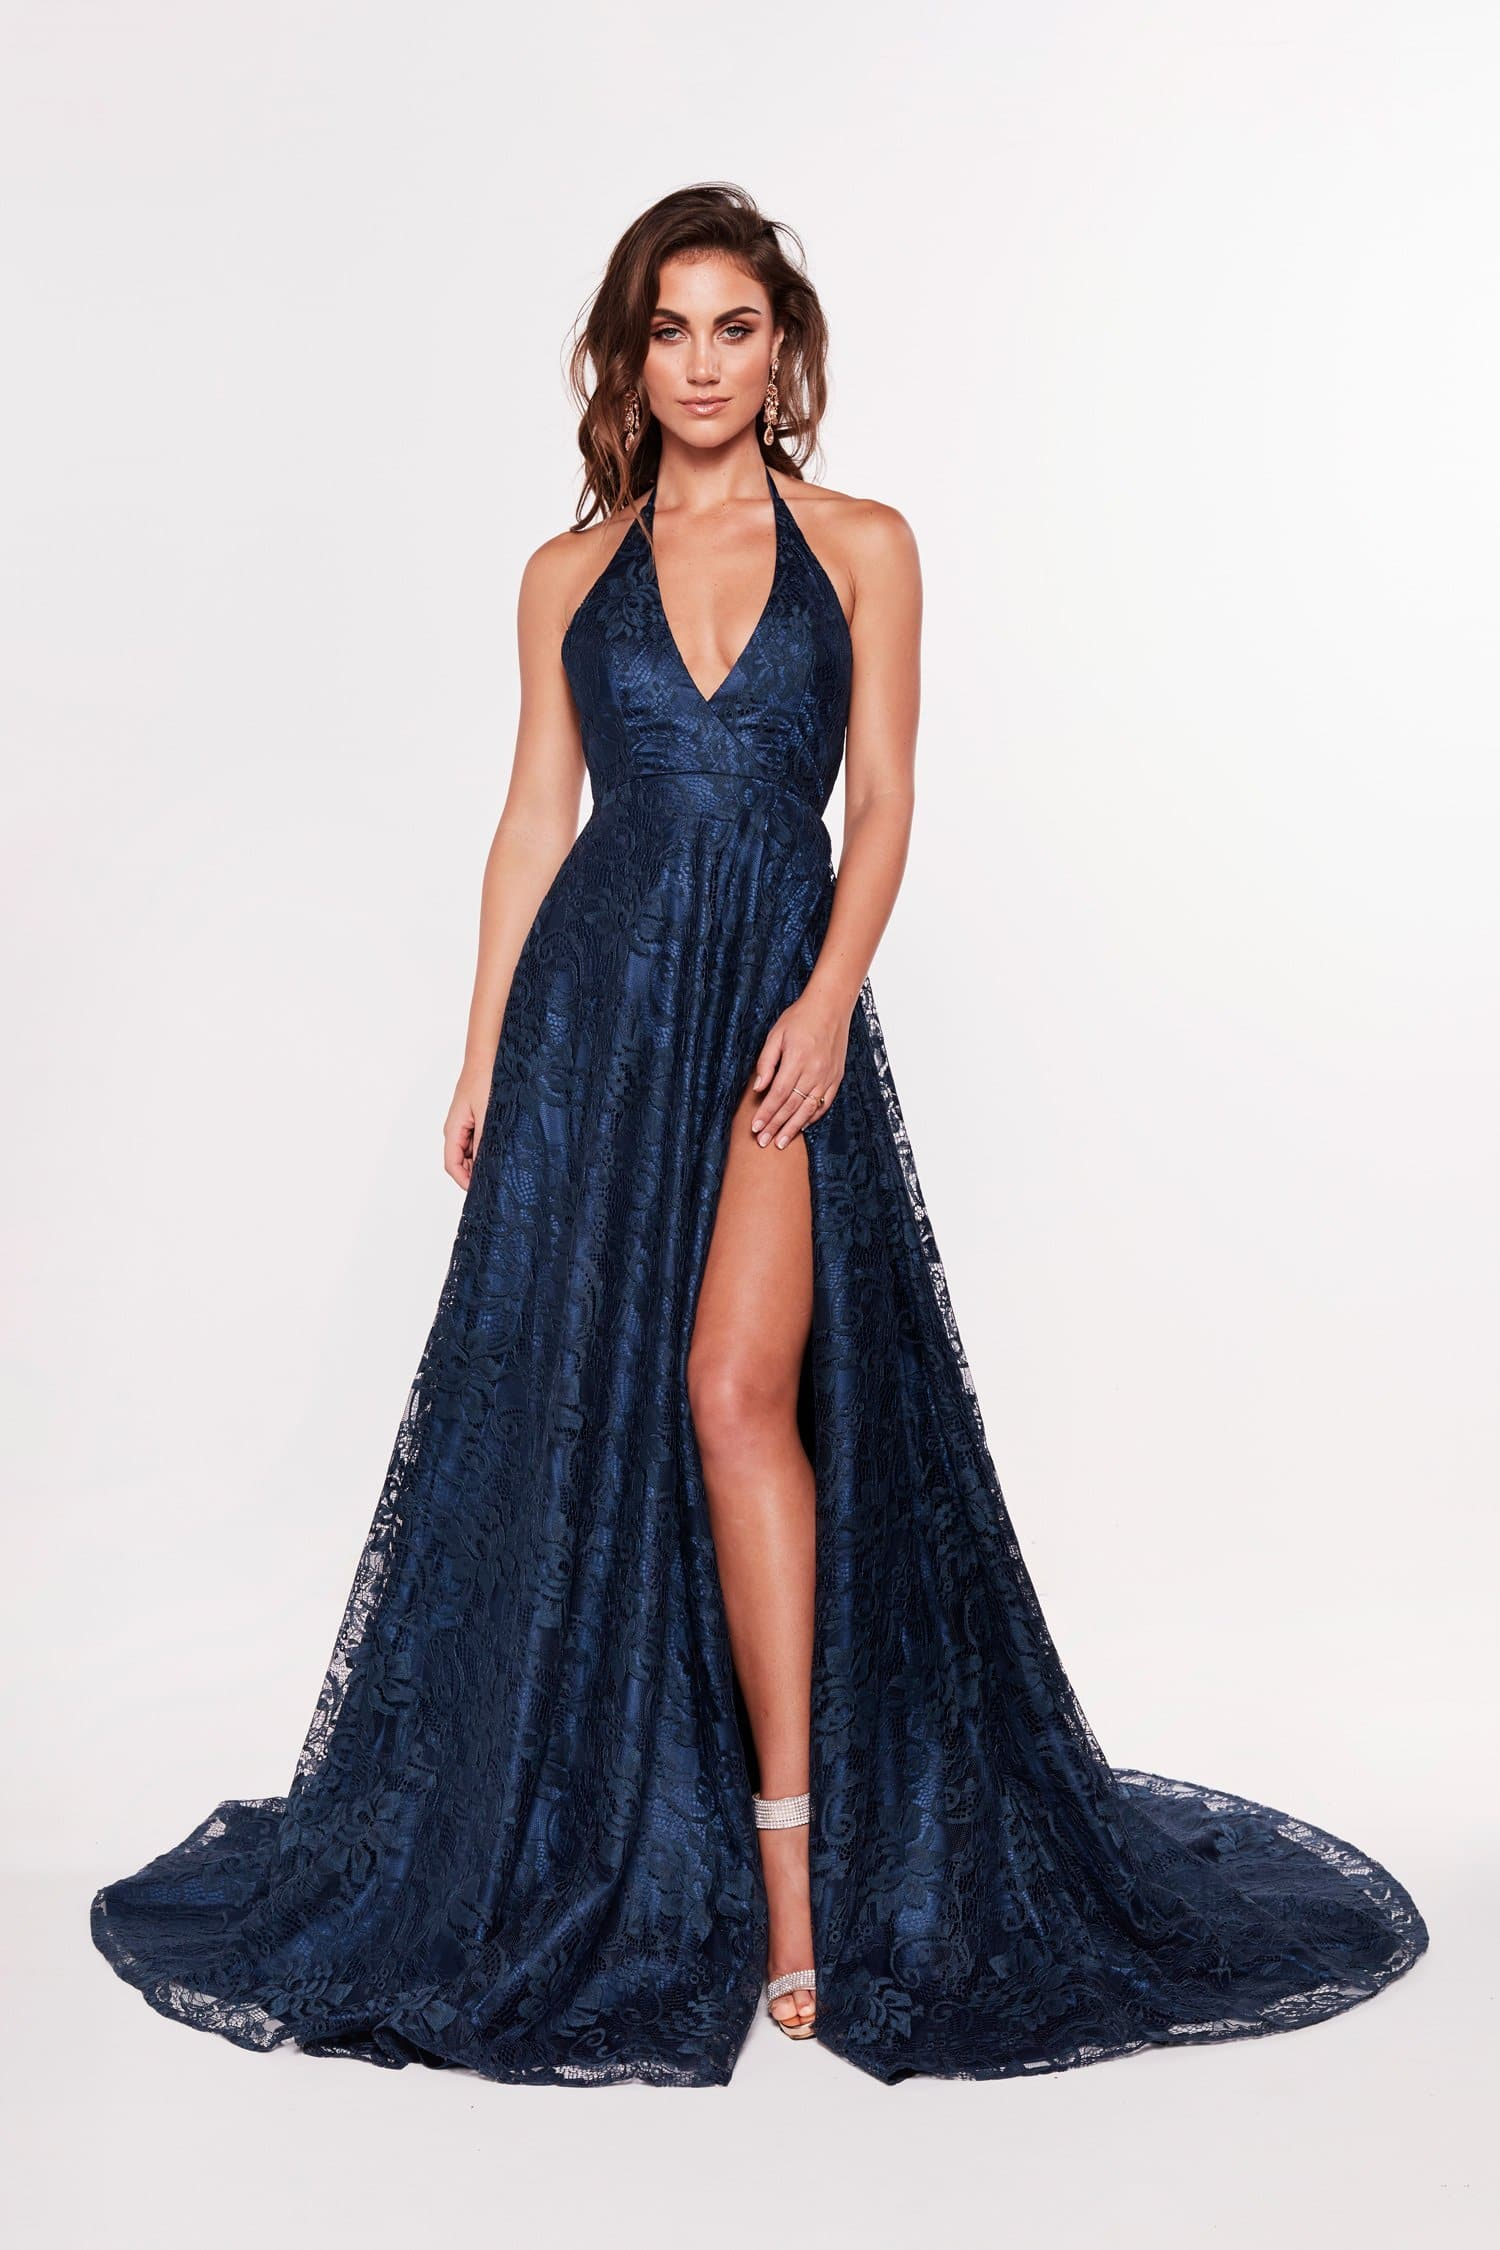 A&N Frida - Navy Lace Gown with Plunging Neckline and Low Back